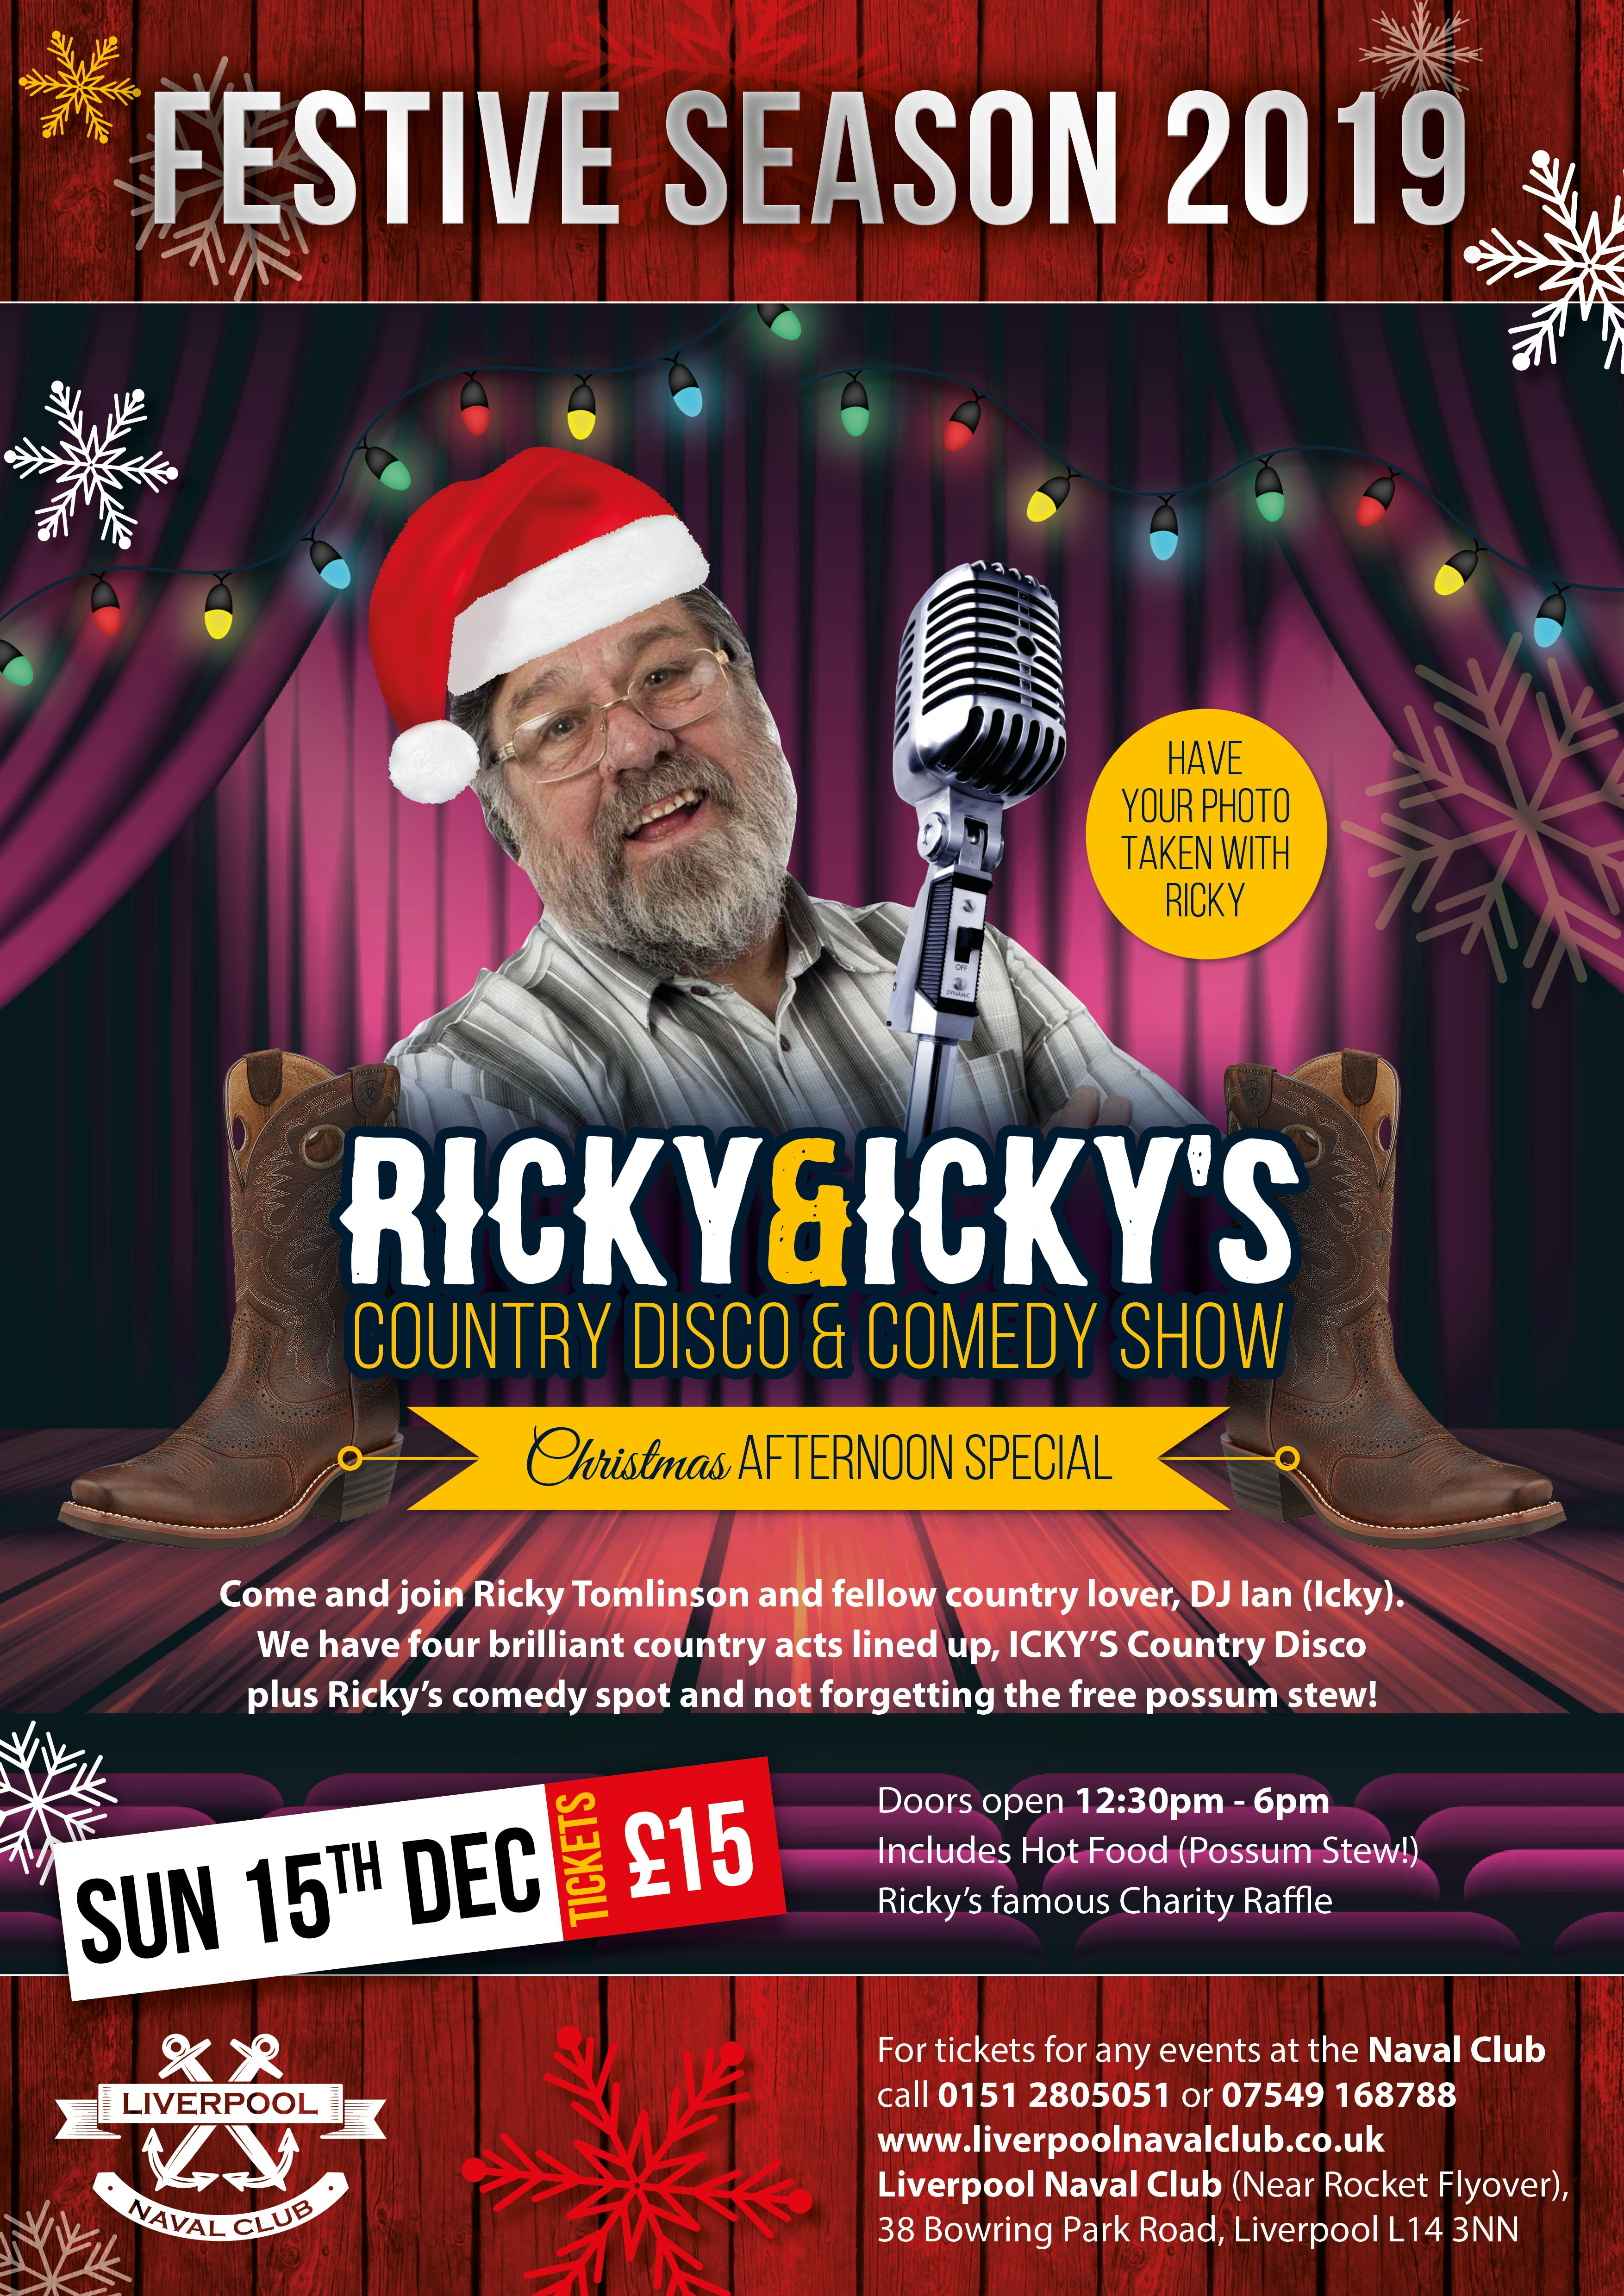 RICKY TOMLINSON CHRISTMAS SPECIAL - Ricky & Icky's Monthly Country and Comedy Shows